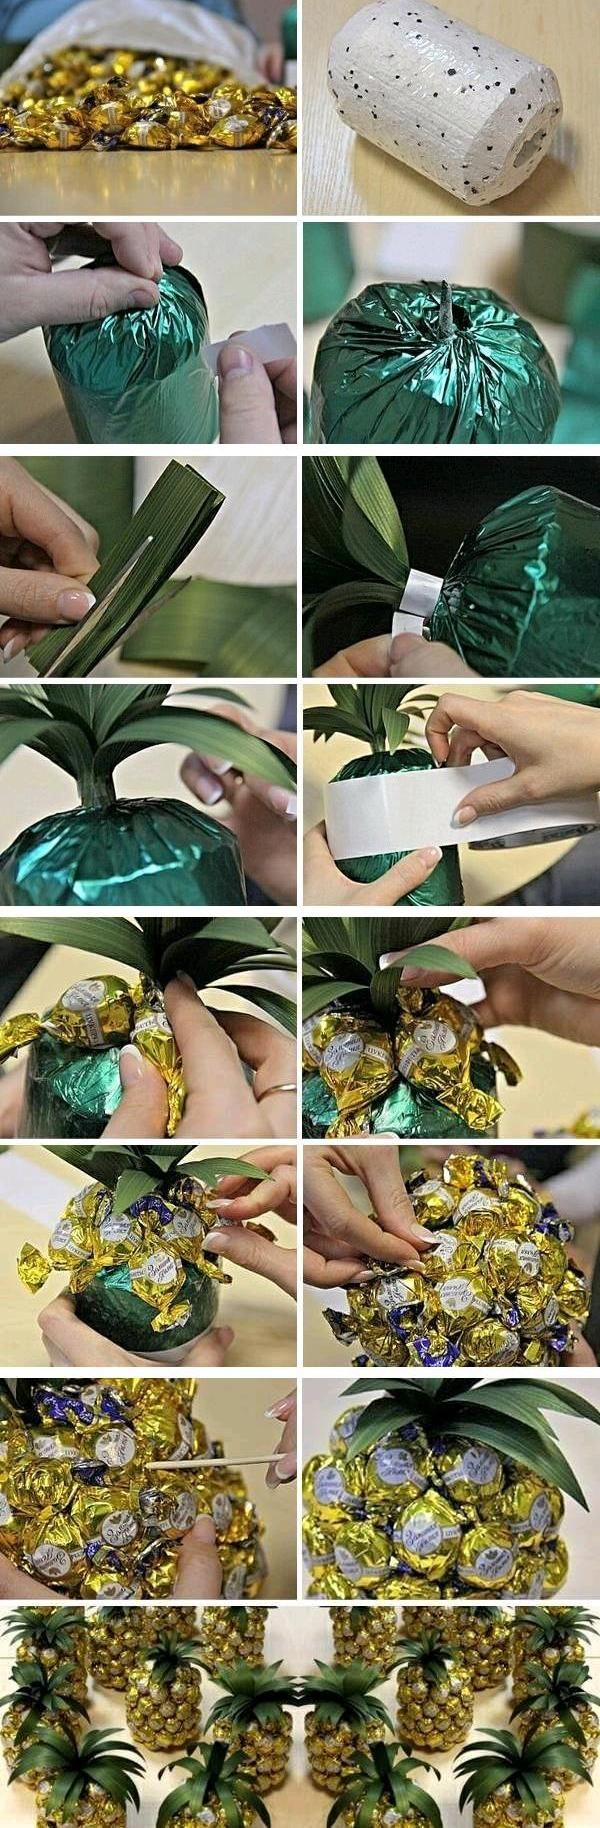 Creative chocolate wrapping idea wine bottle chocolates pineapple look